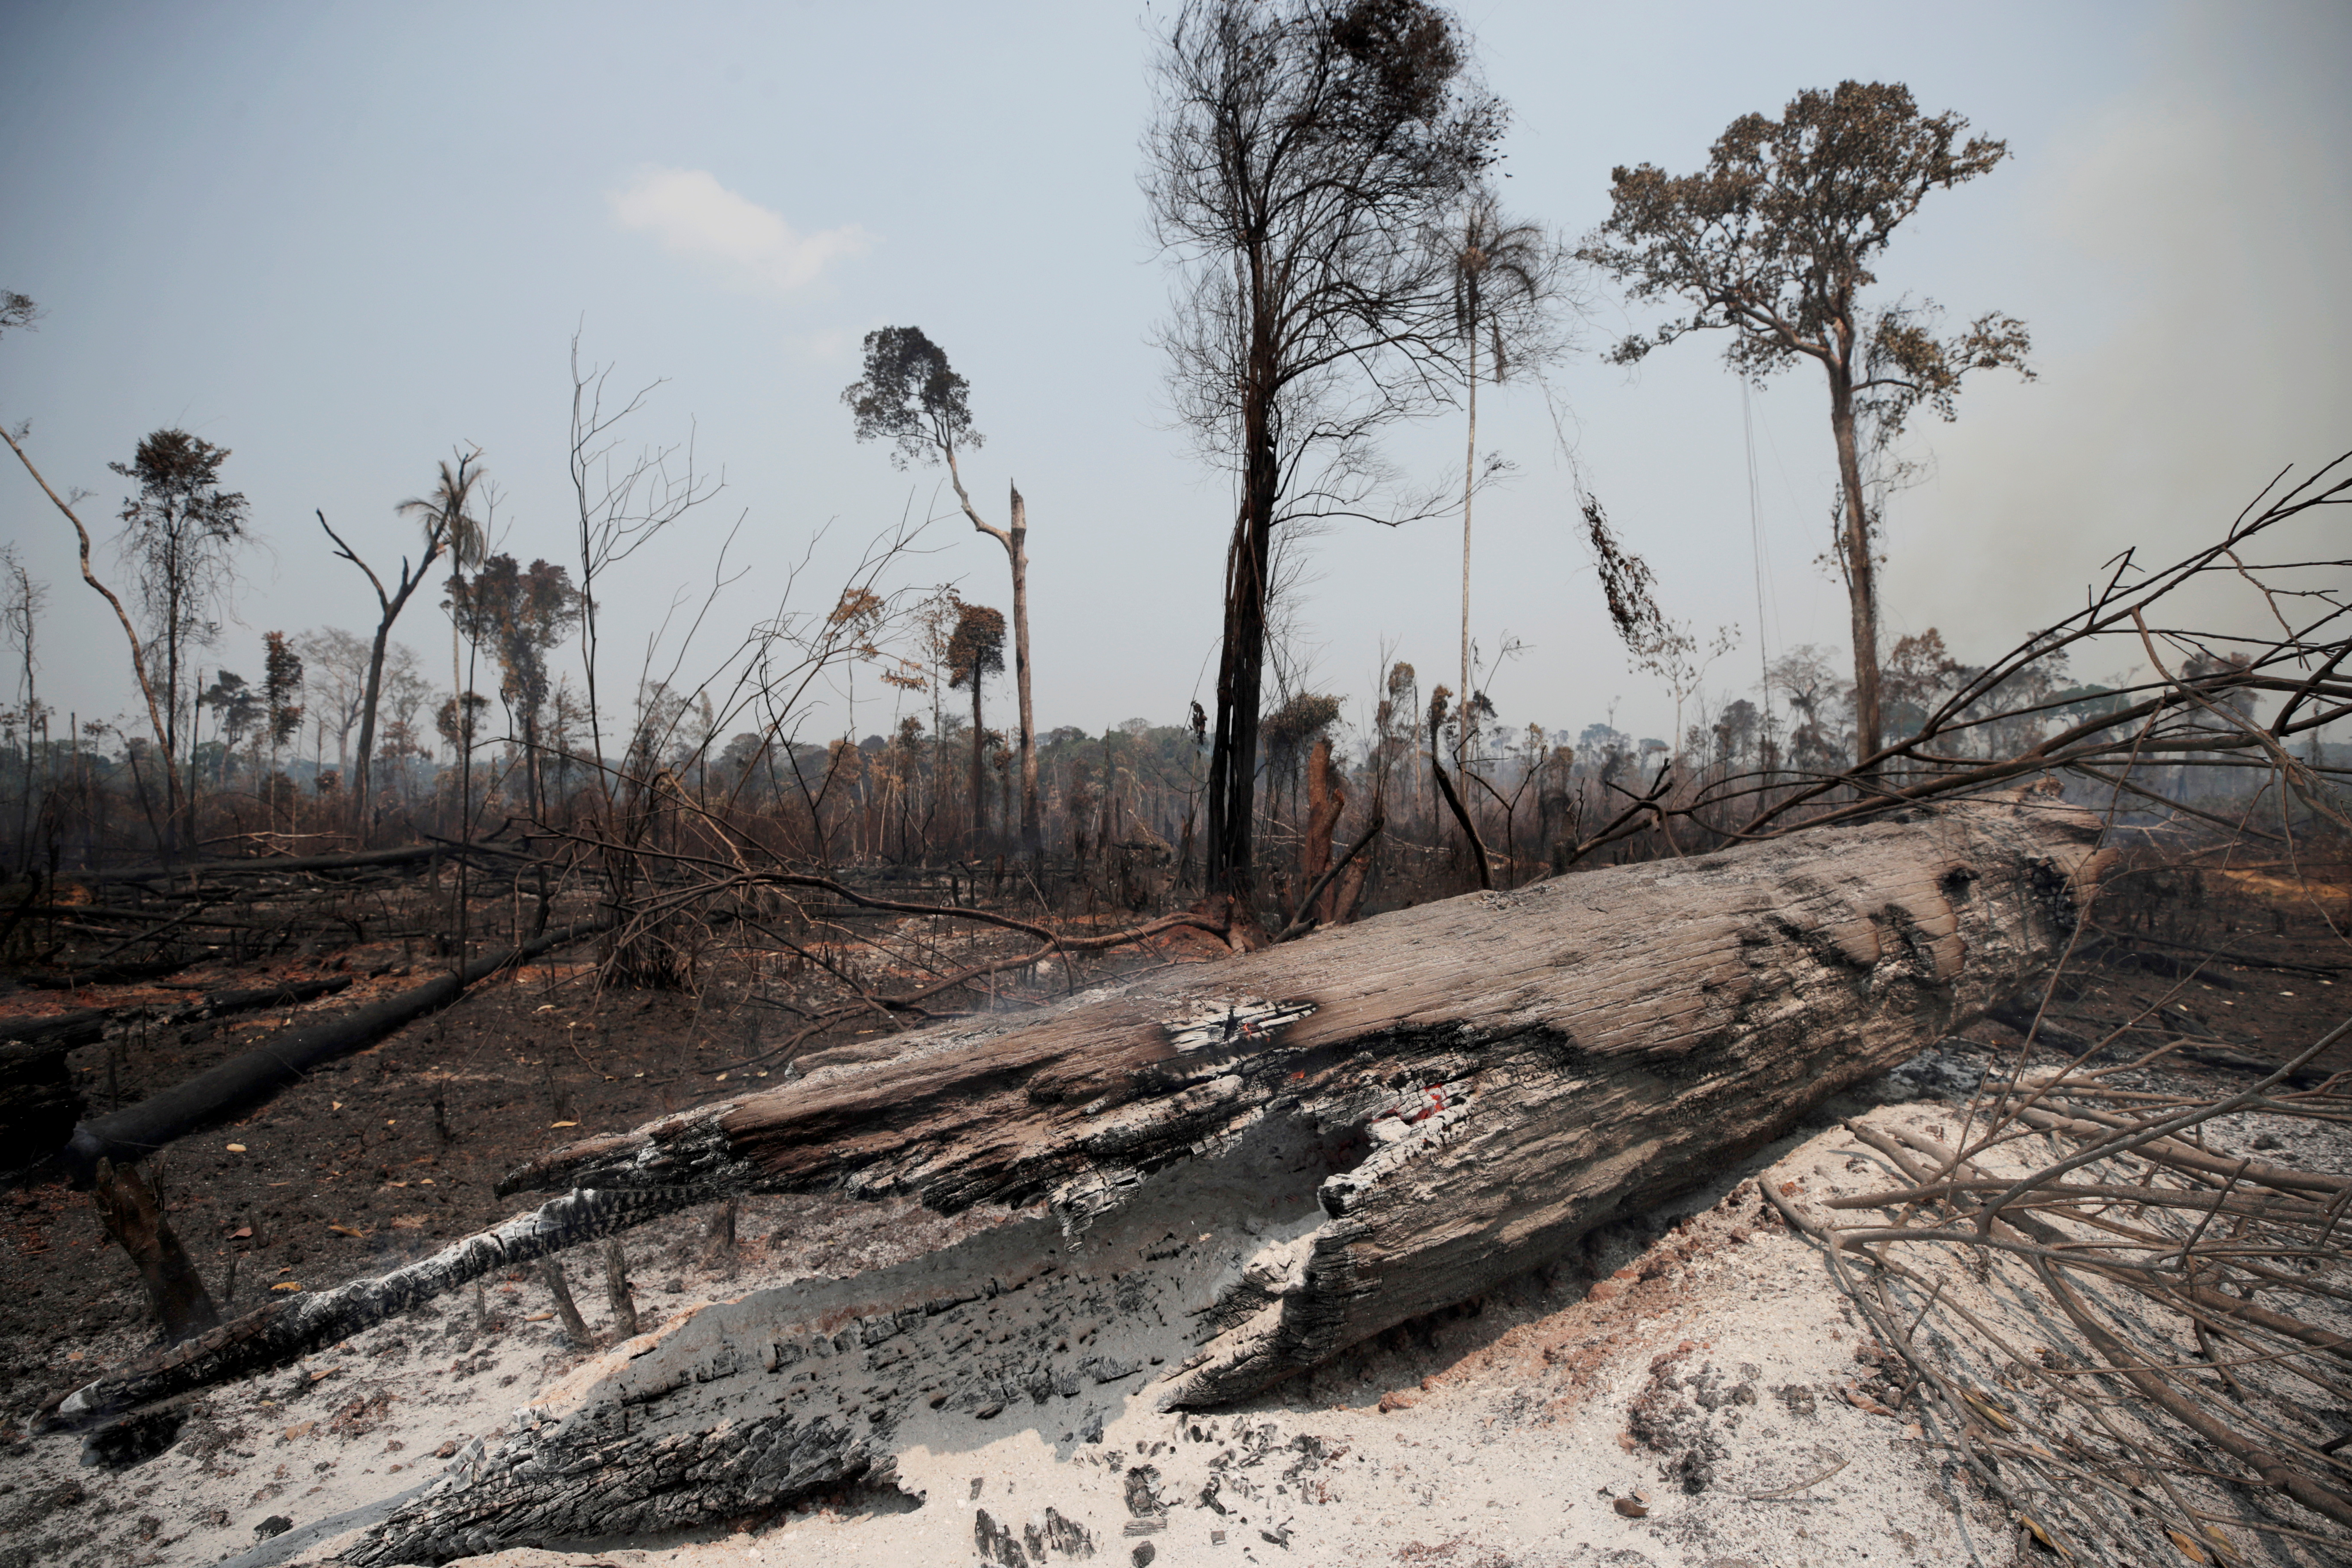 Charred trunks are seen on a tract of Amazon jungle, that was recently burned by loggers and farmers, in Porto Velho, Brazil August 23, 2019. REUTERS/Ueslei Marcelino